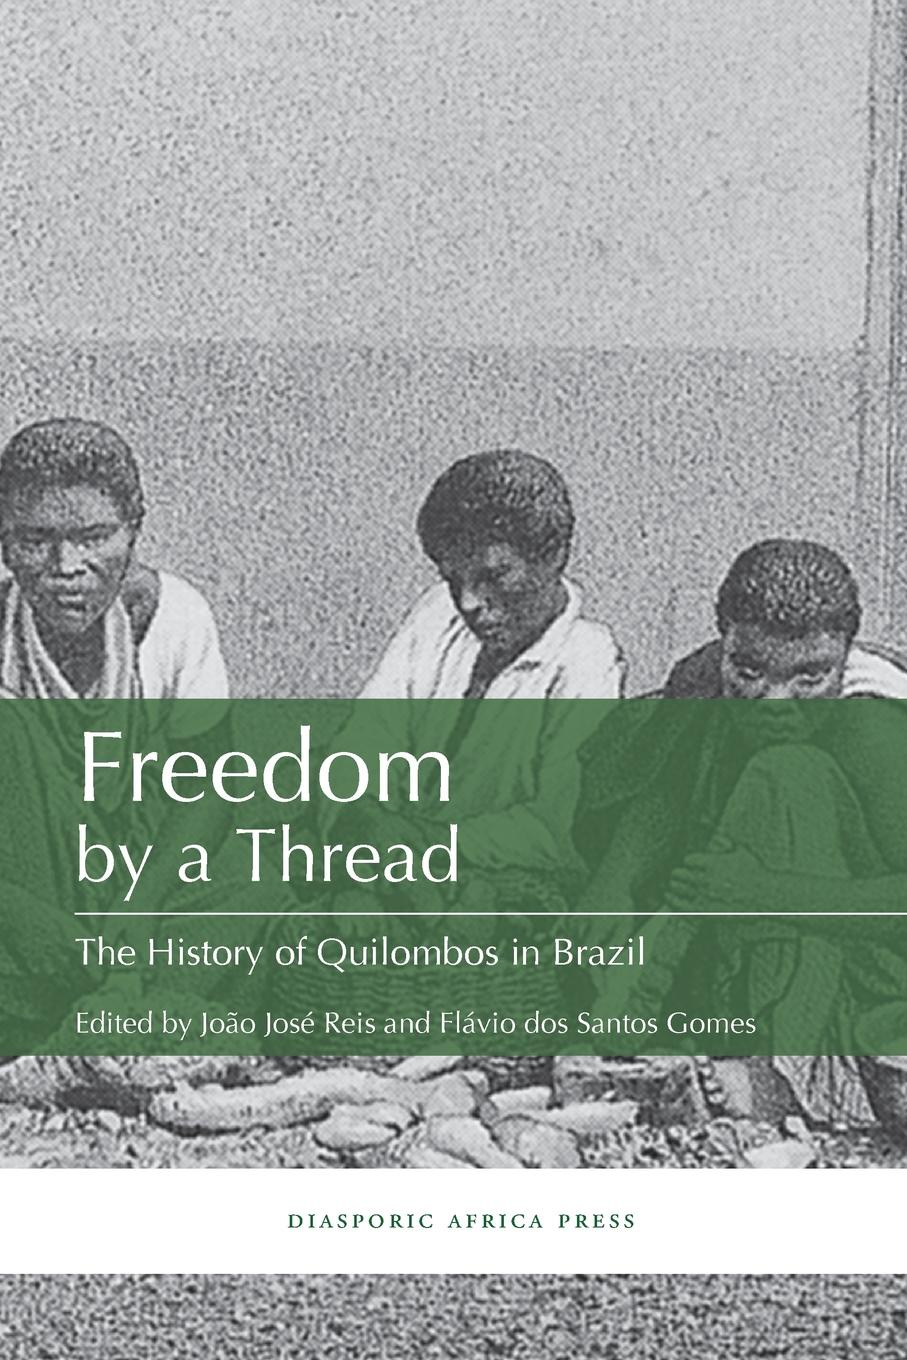 Freedom by a Thread. The History of Quilombos in Brazil charles edmond akers the rubber industry in brazil and the orient